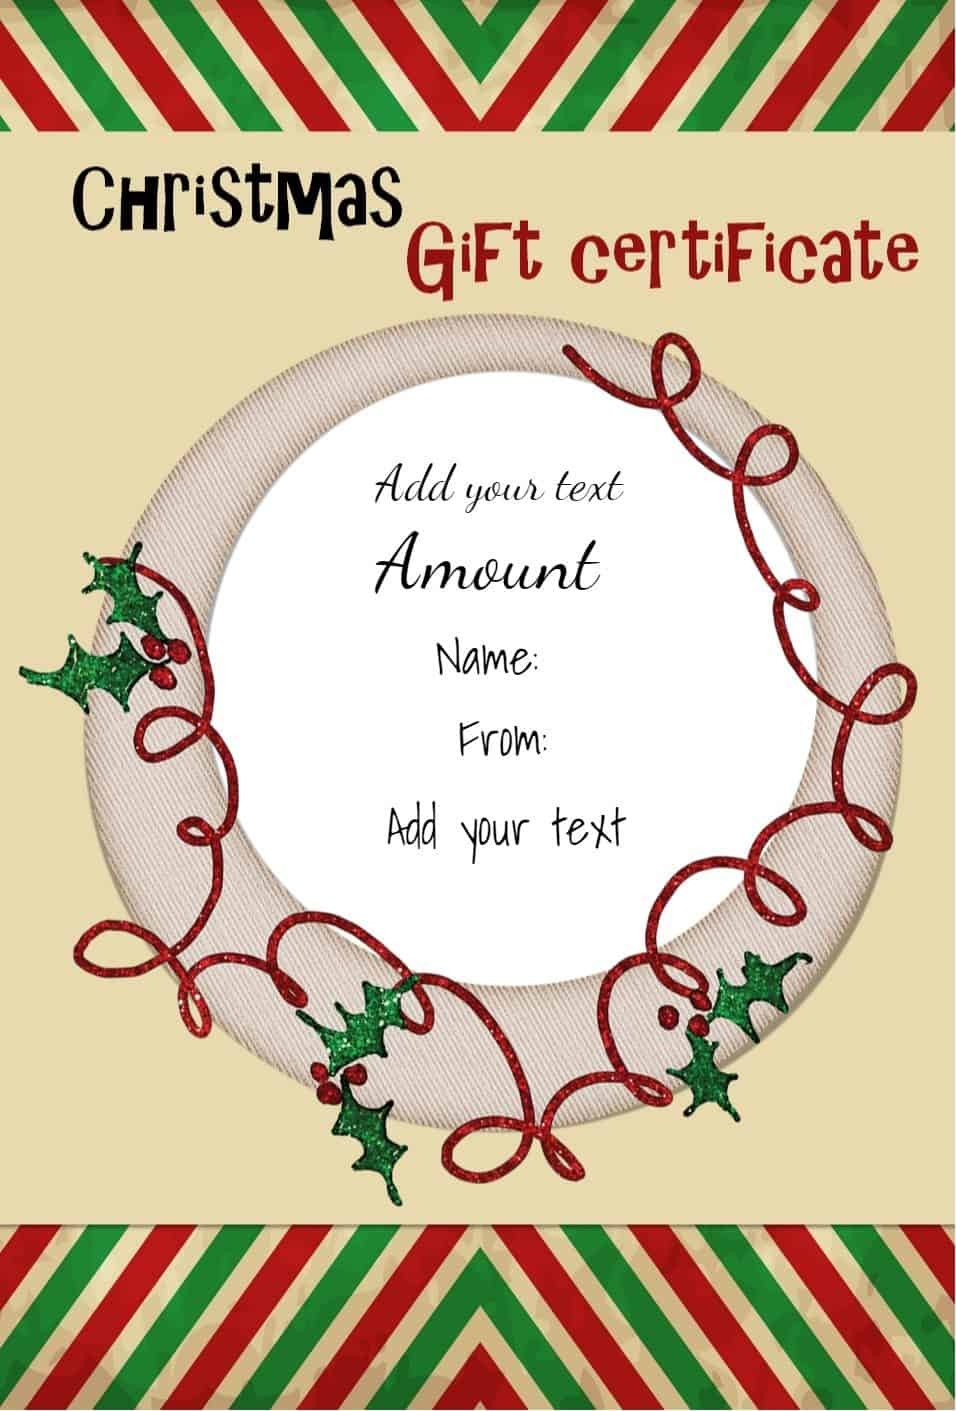 Free Christmas Gift Certificate Template  Customize Online  Download Throughout Homemade Christmas Gift Certificates Templates